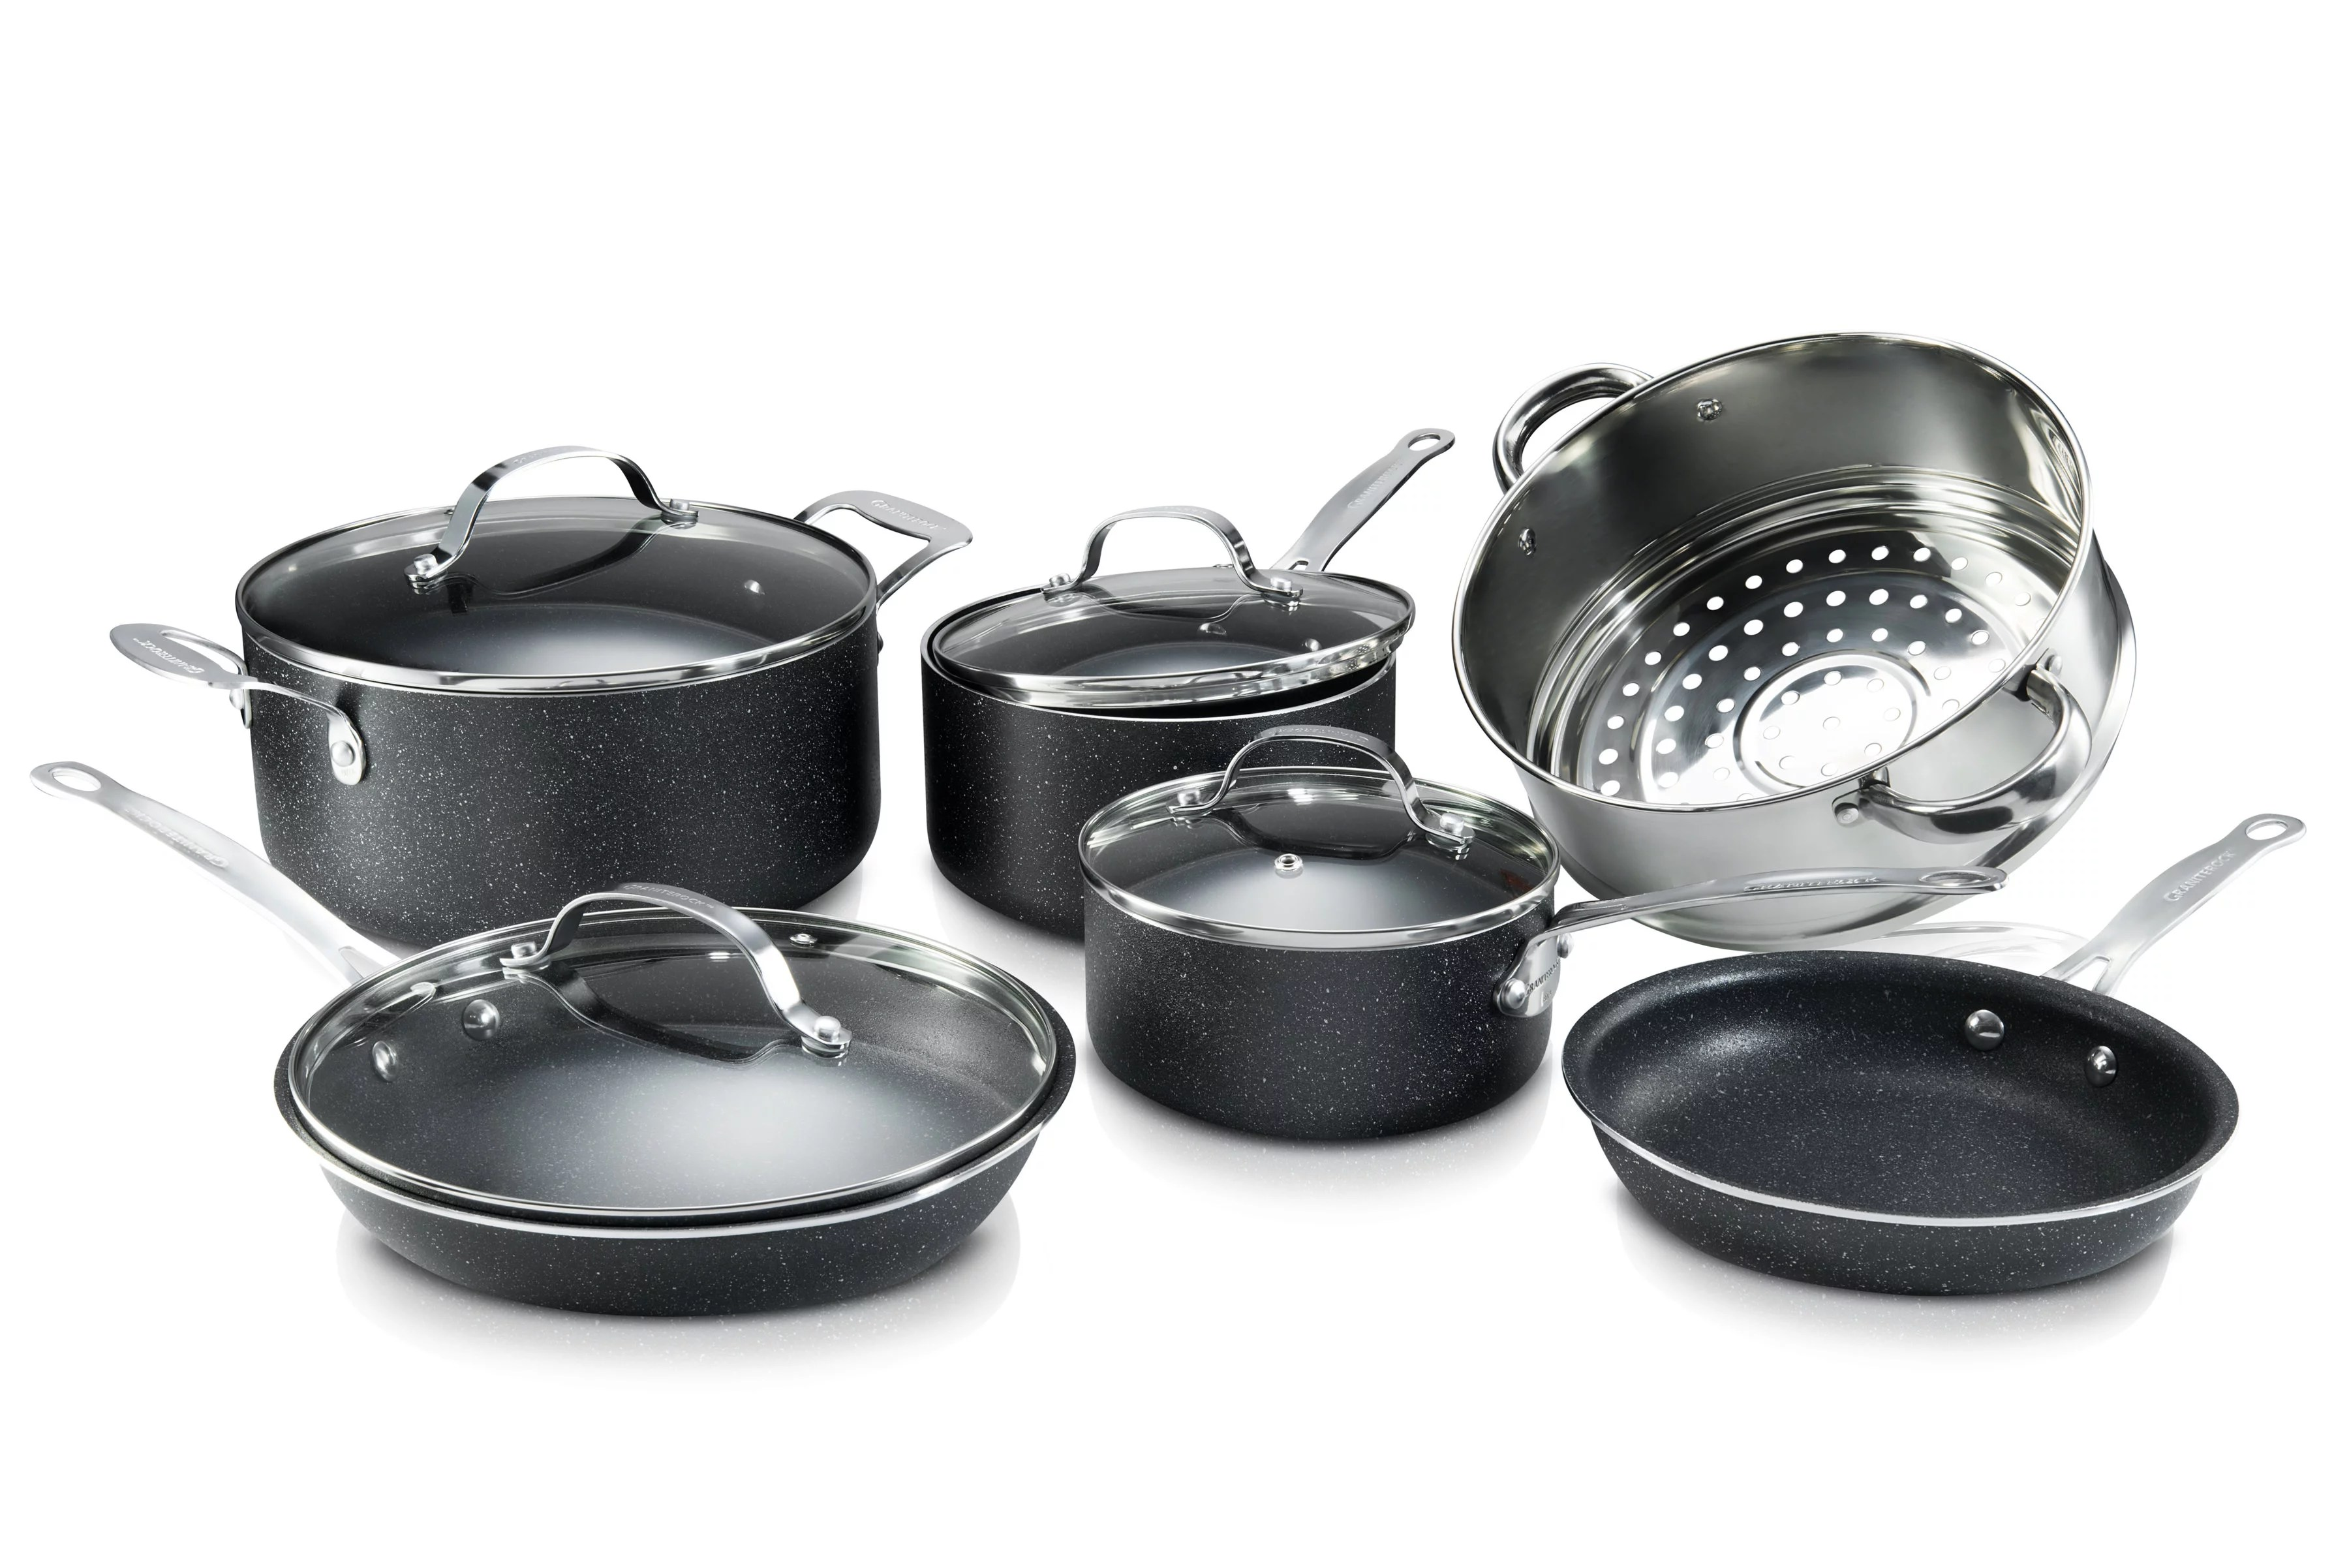 granite stone 10 piece nonstick pots and pans cookware set ultimate durability and nonstick with mineral diamond triple coated